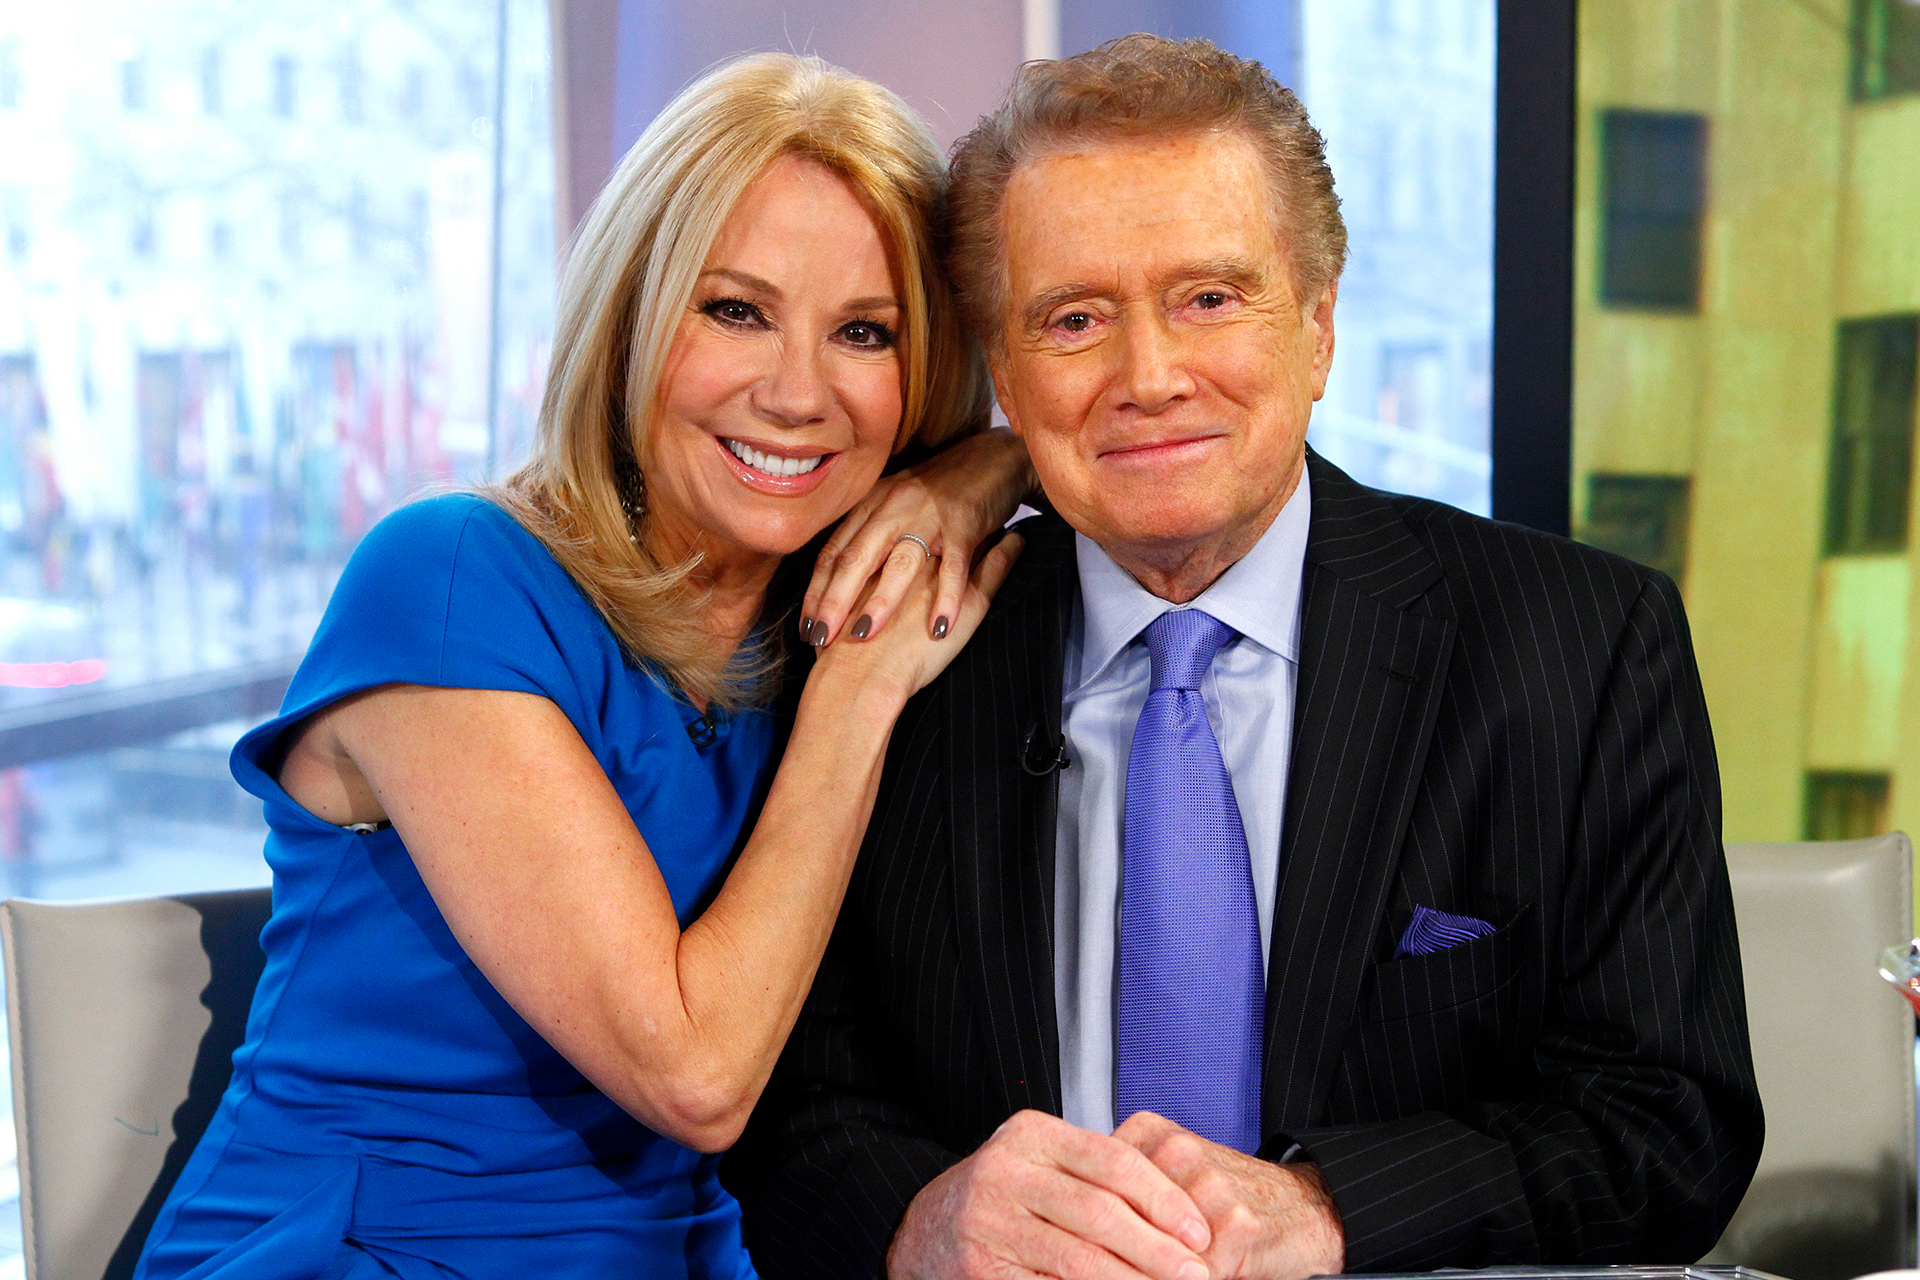 People Now: Kathie Lee Gifford Shares What She'll Miss Most About Regis Philbin: 'One of My Best Friends' - Watch the Full Episode